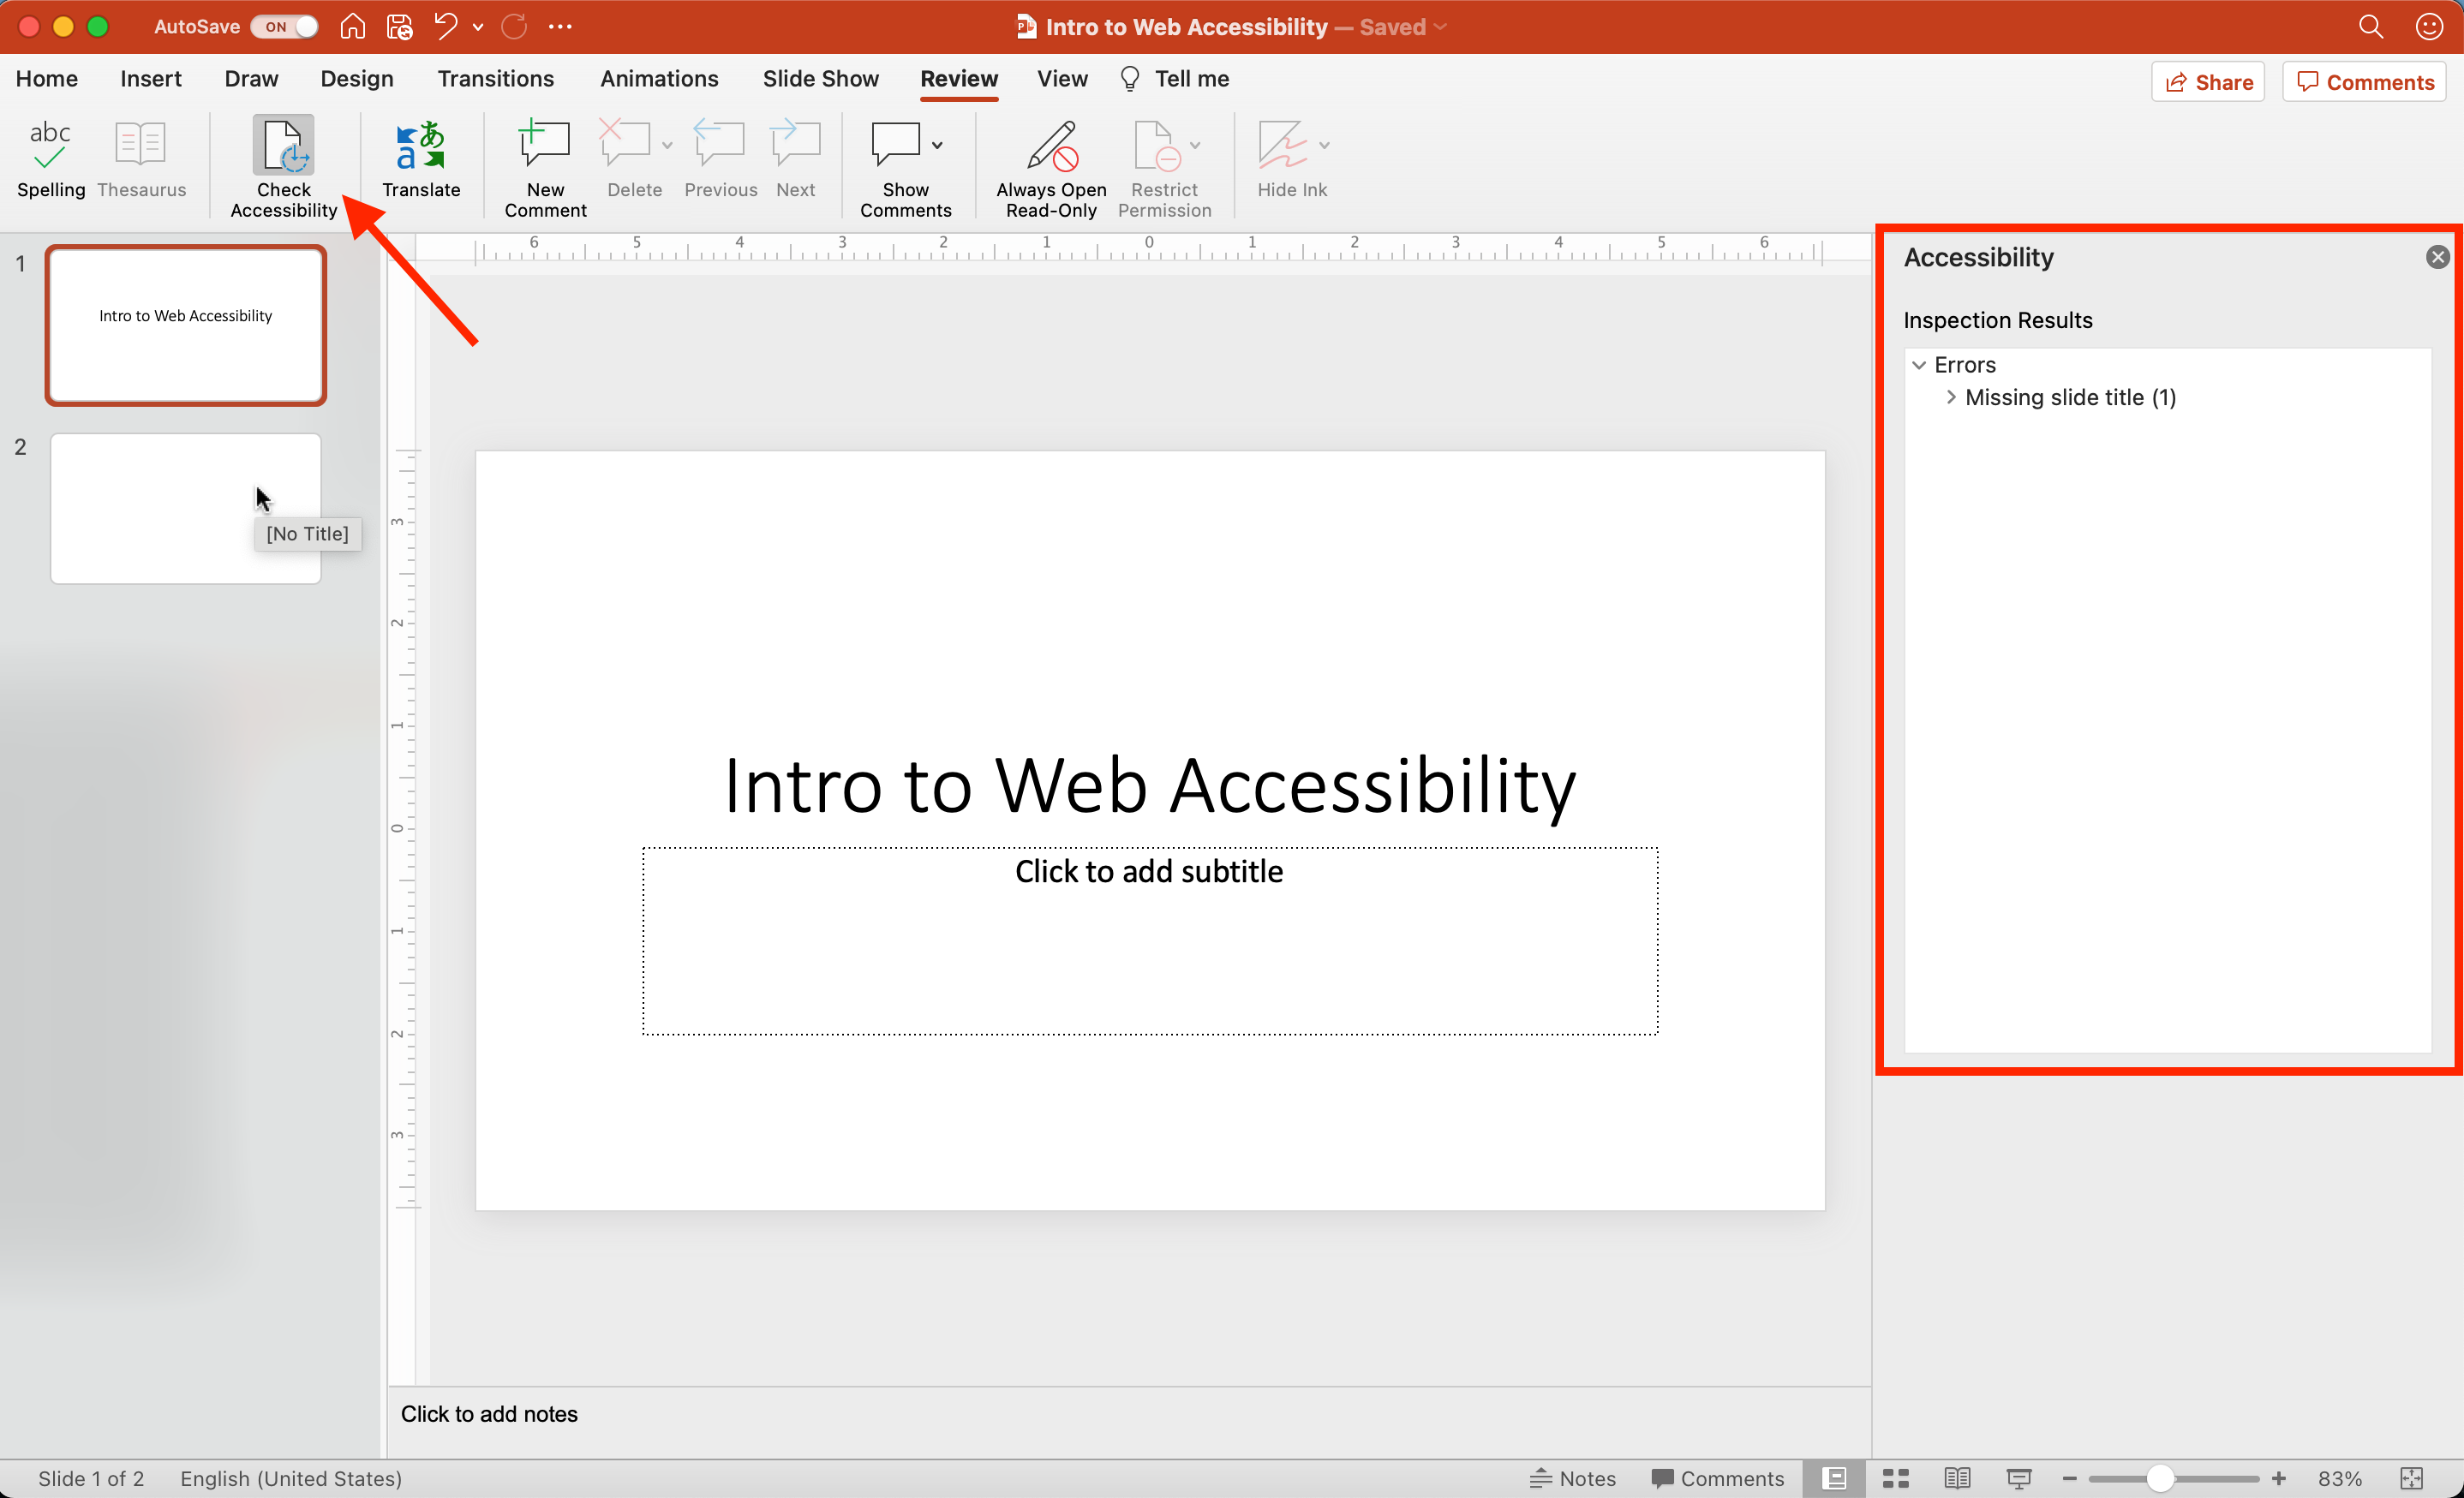 The Check Accessibility menu option is activated on a simple PowerPoint deck where one slide is missing a title. The Accessibility pane shows the 'Missing slide title' error and the mouse hover text for that slide also reads '[No Title]'.